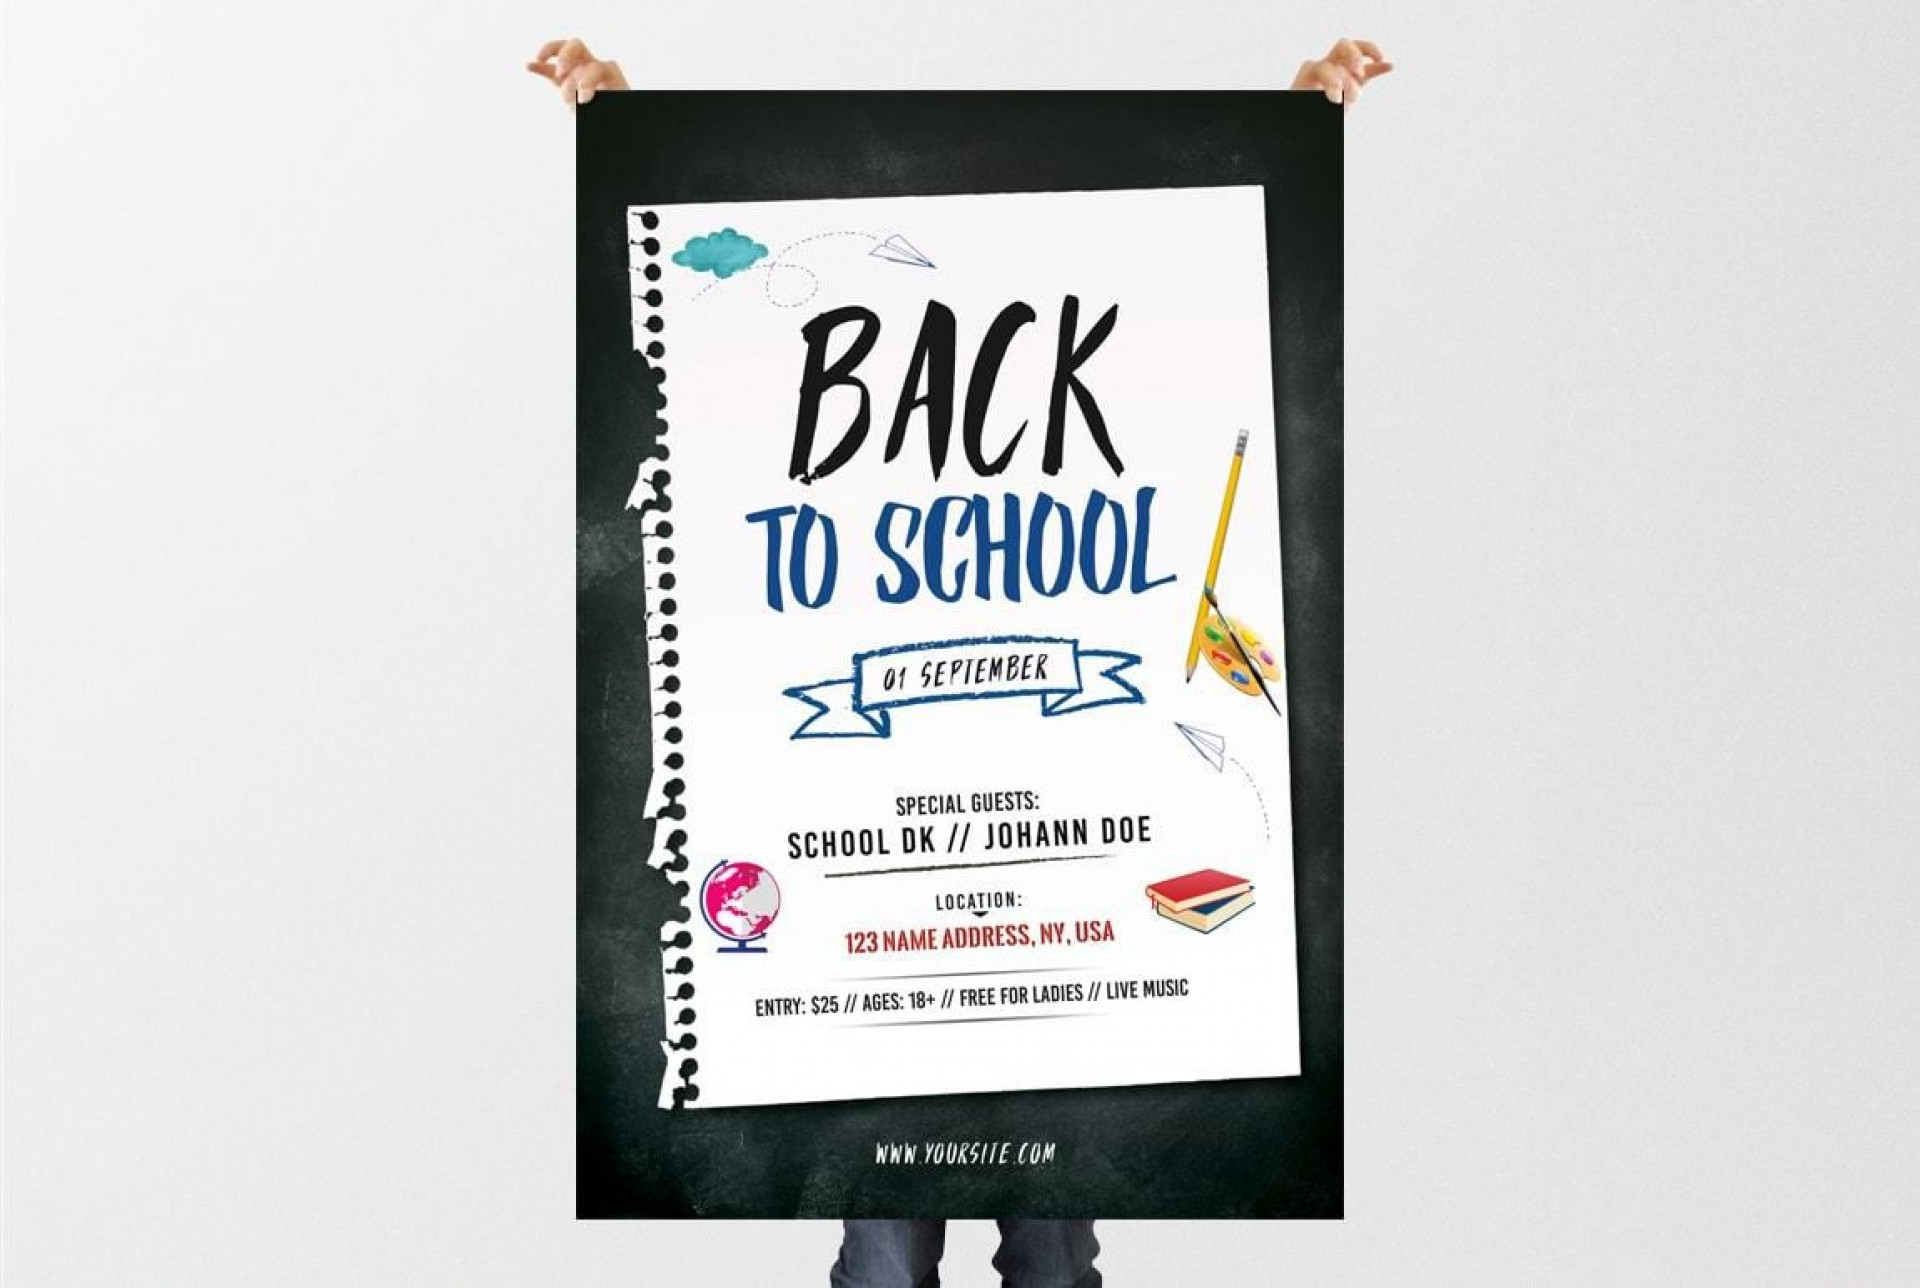 003 Archaicawful Free Back To School Flyer Template Psd Idea 1920